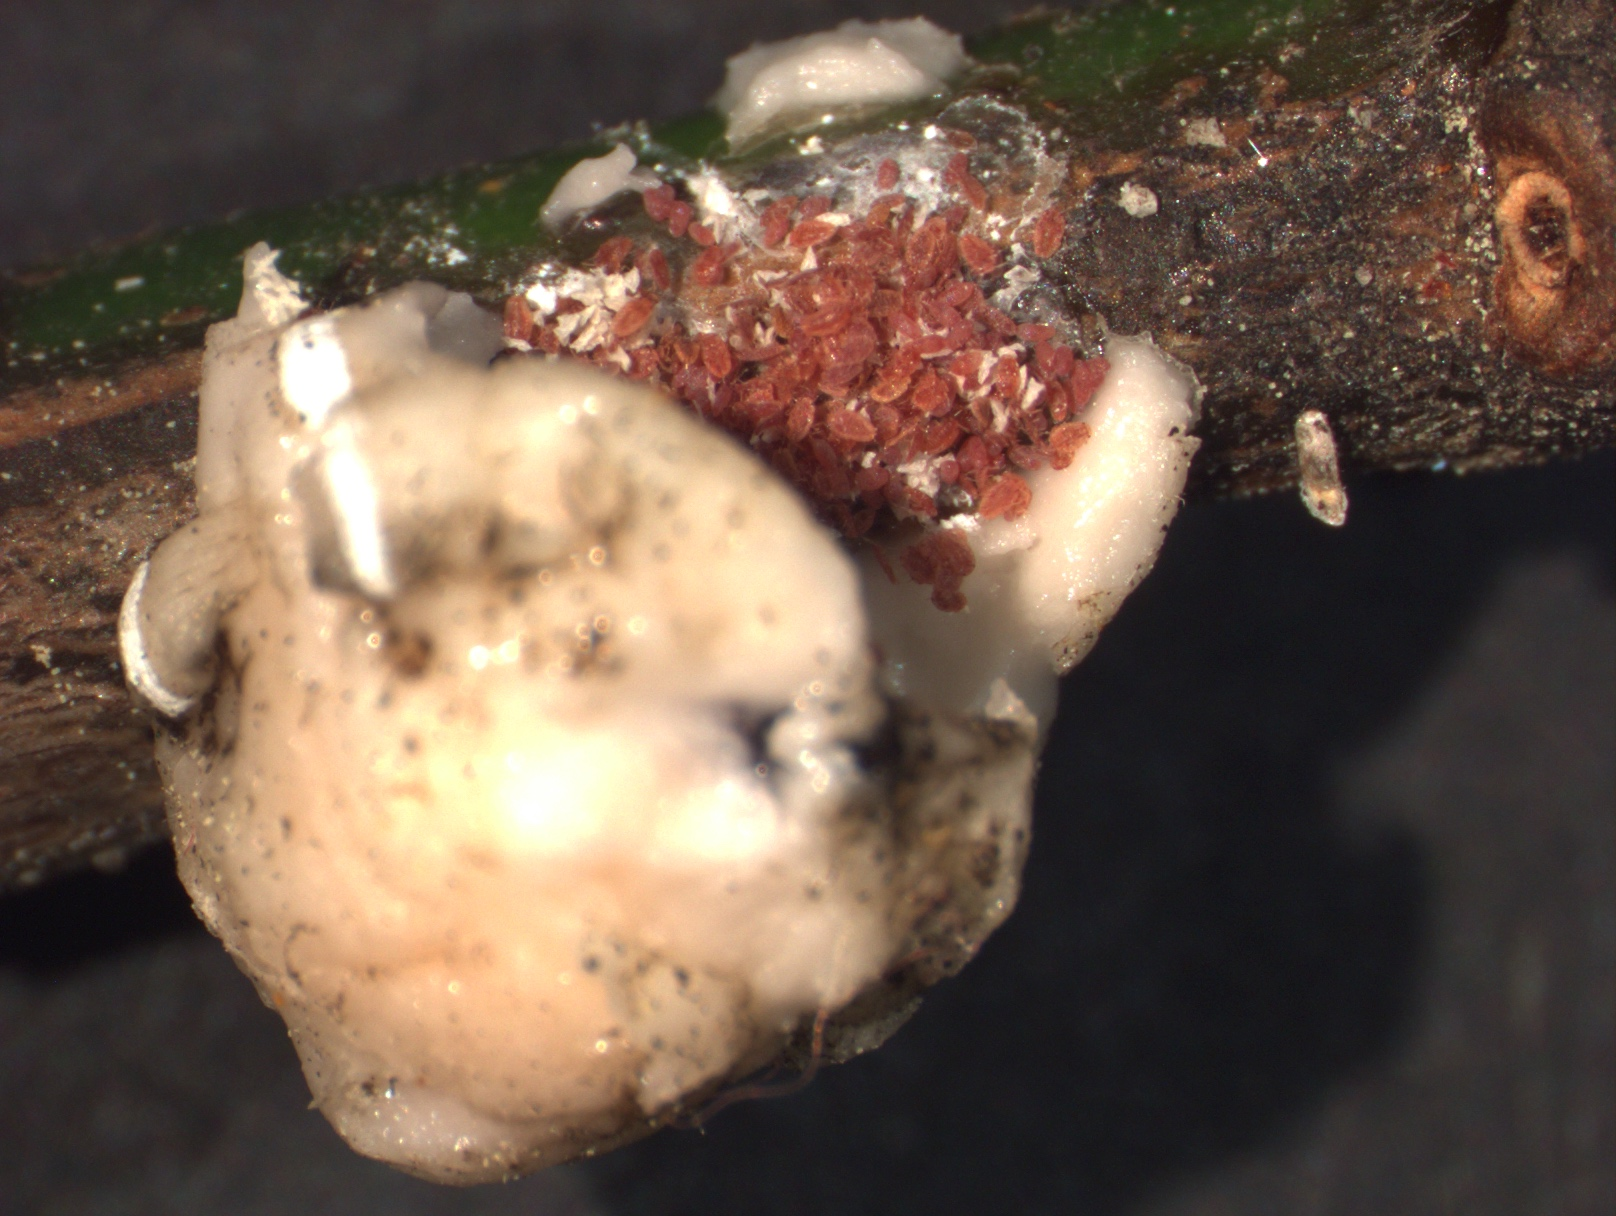 Crawlers hatching beneath a wax scale. Photo: SD Frank